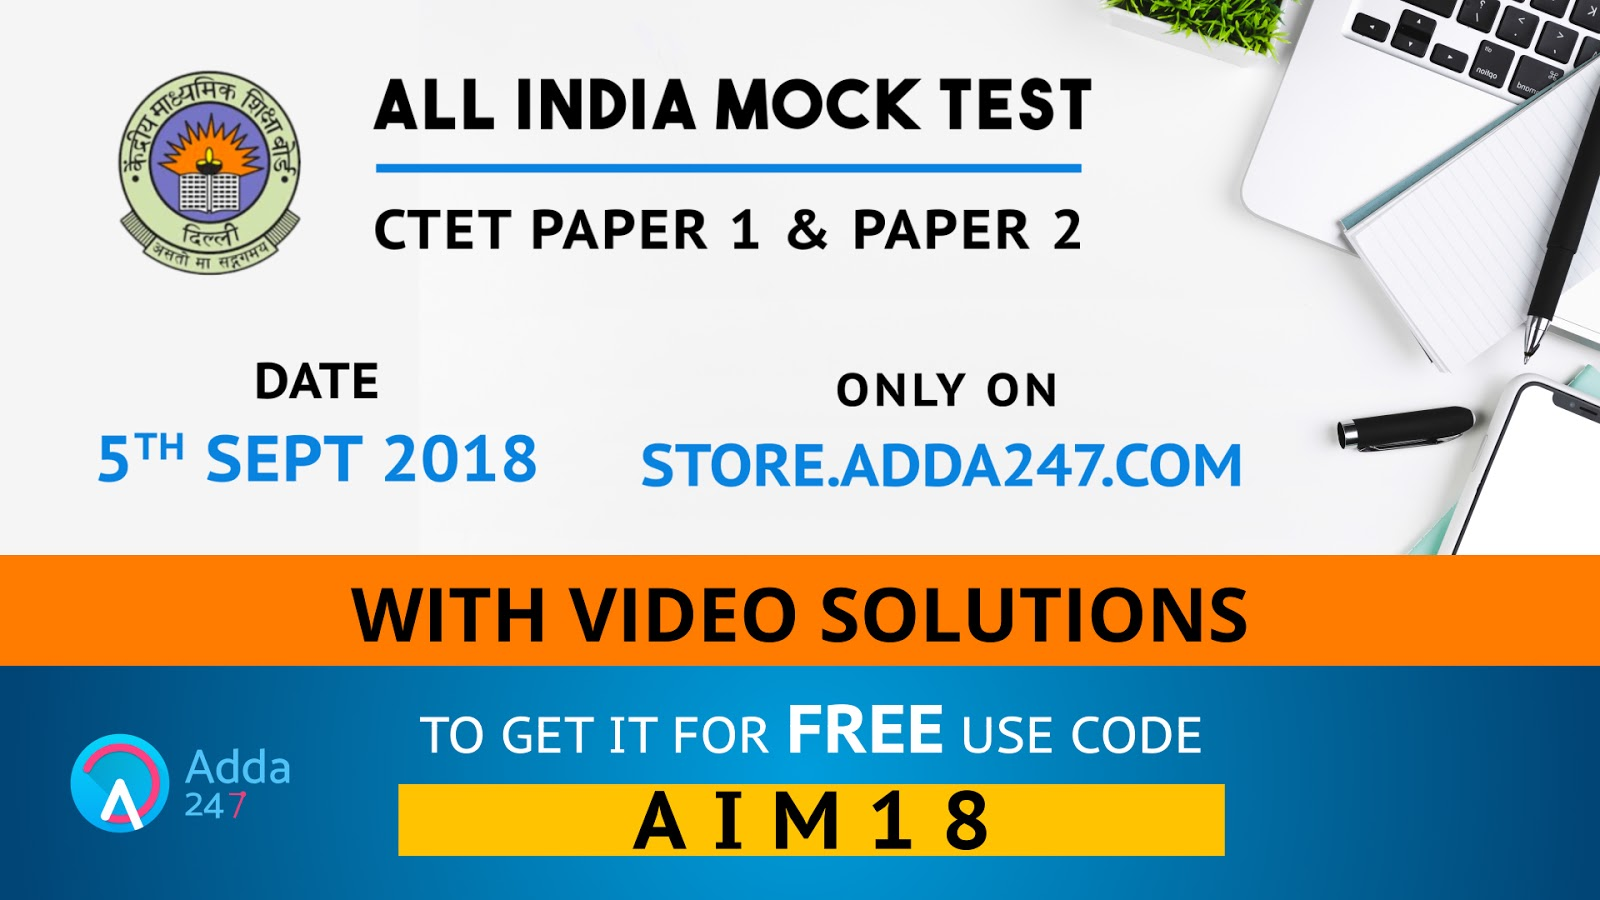 Ctet exam 2018 all india free mock test live now fandeluxe Images